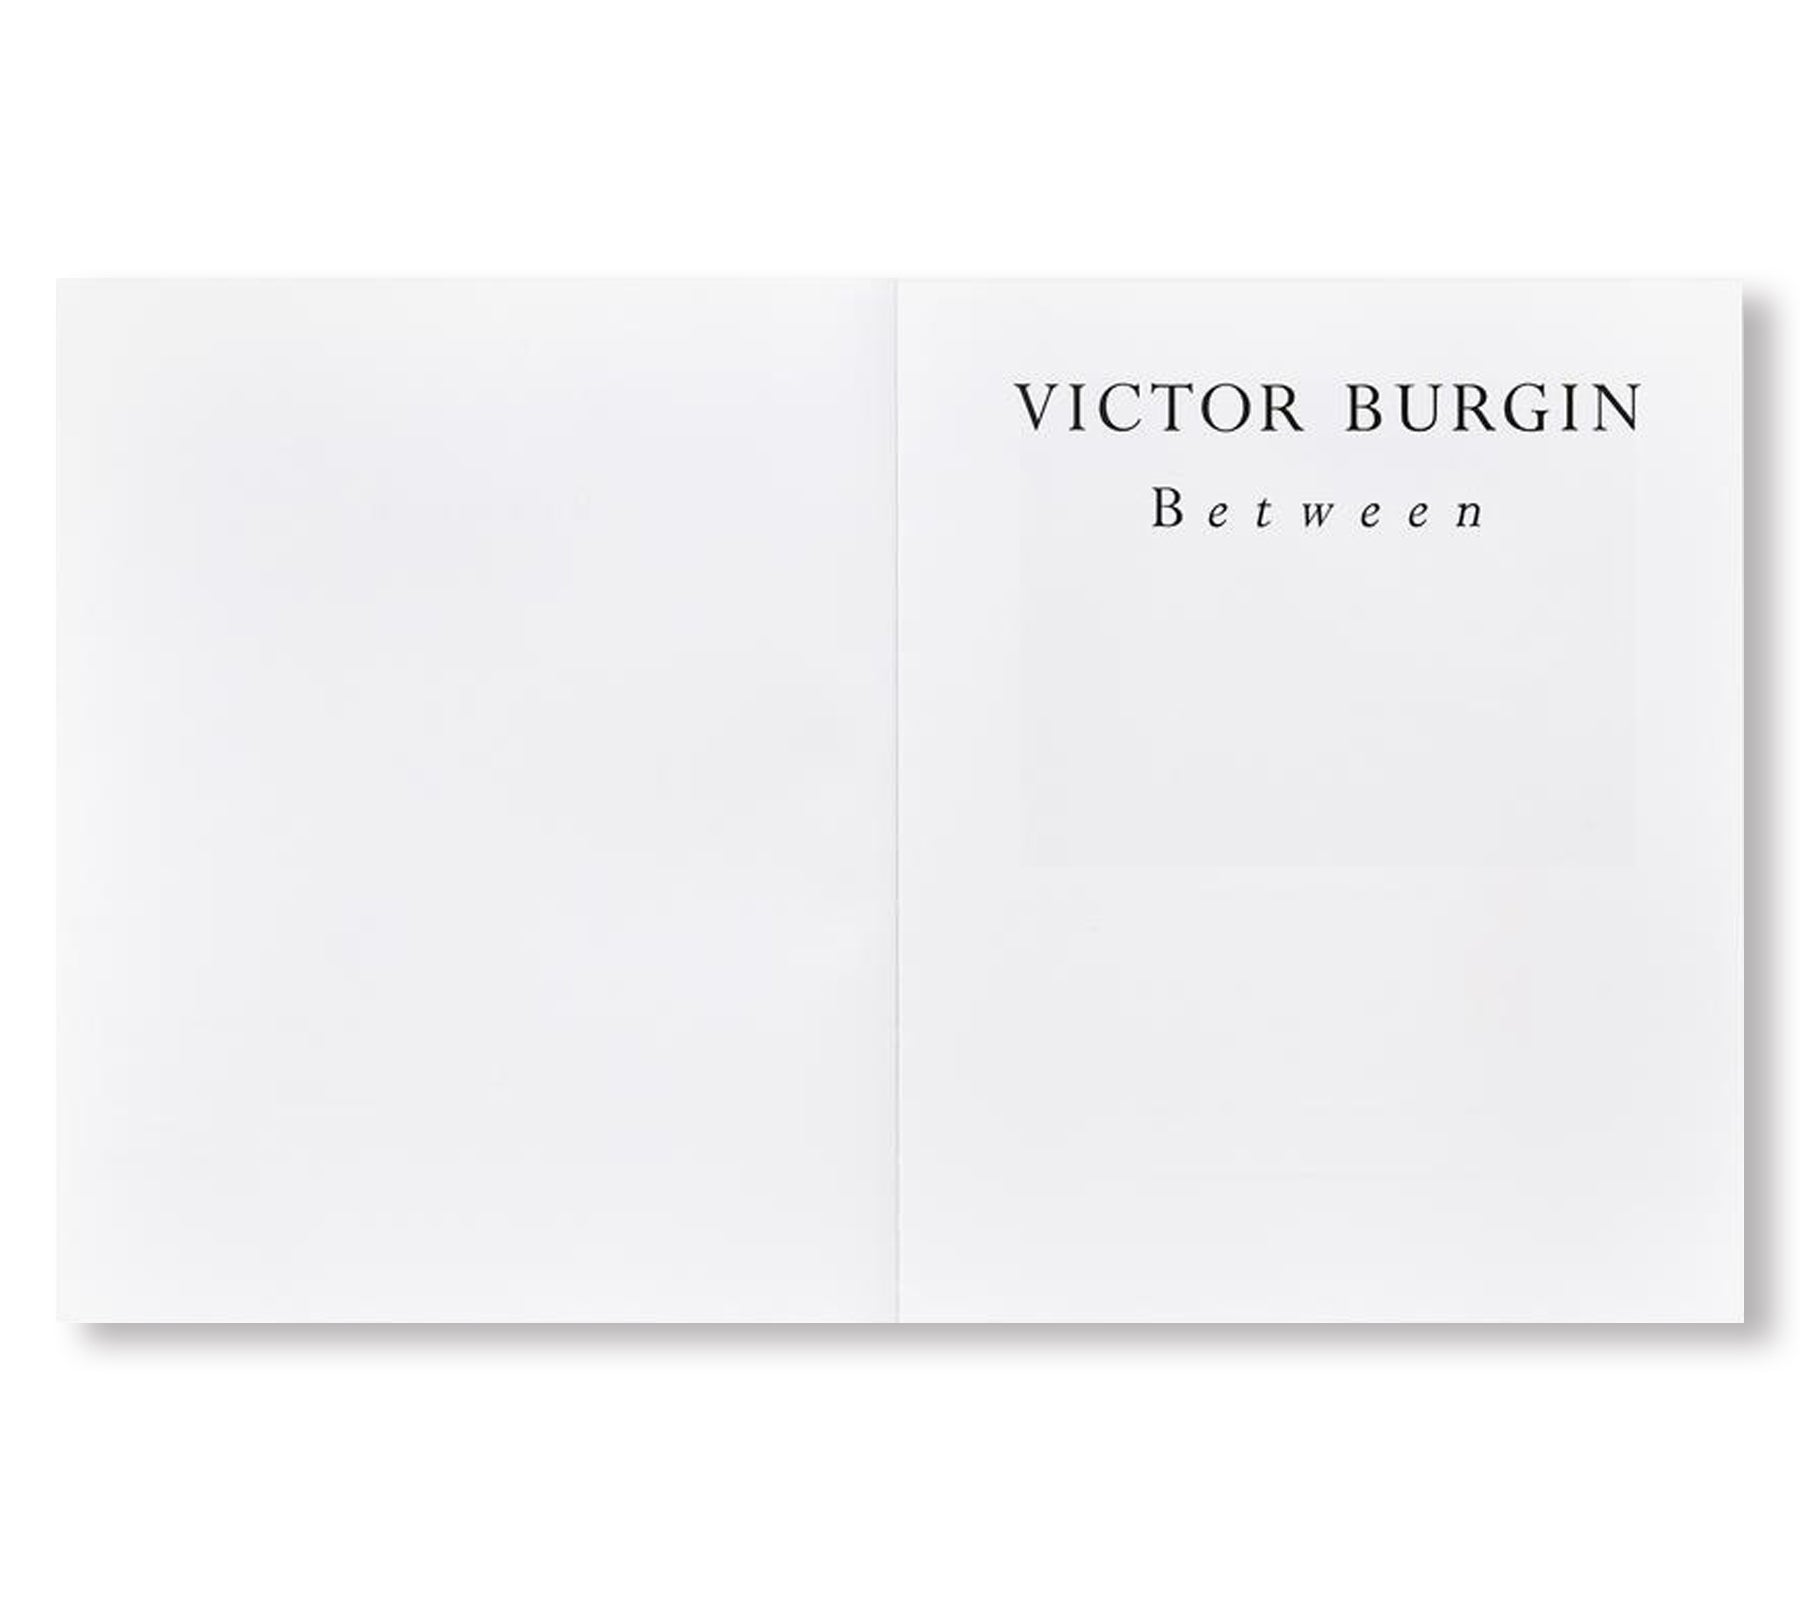 BETWEEN by Victor Burgin